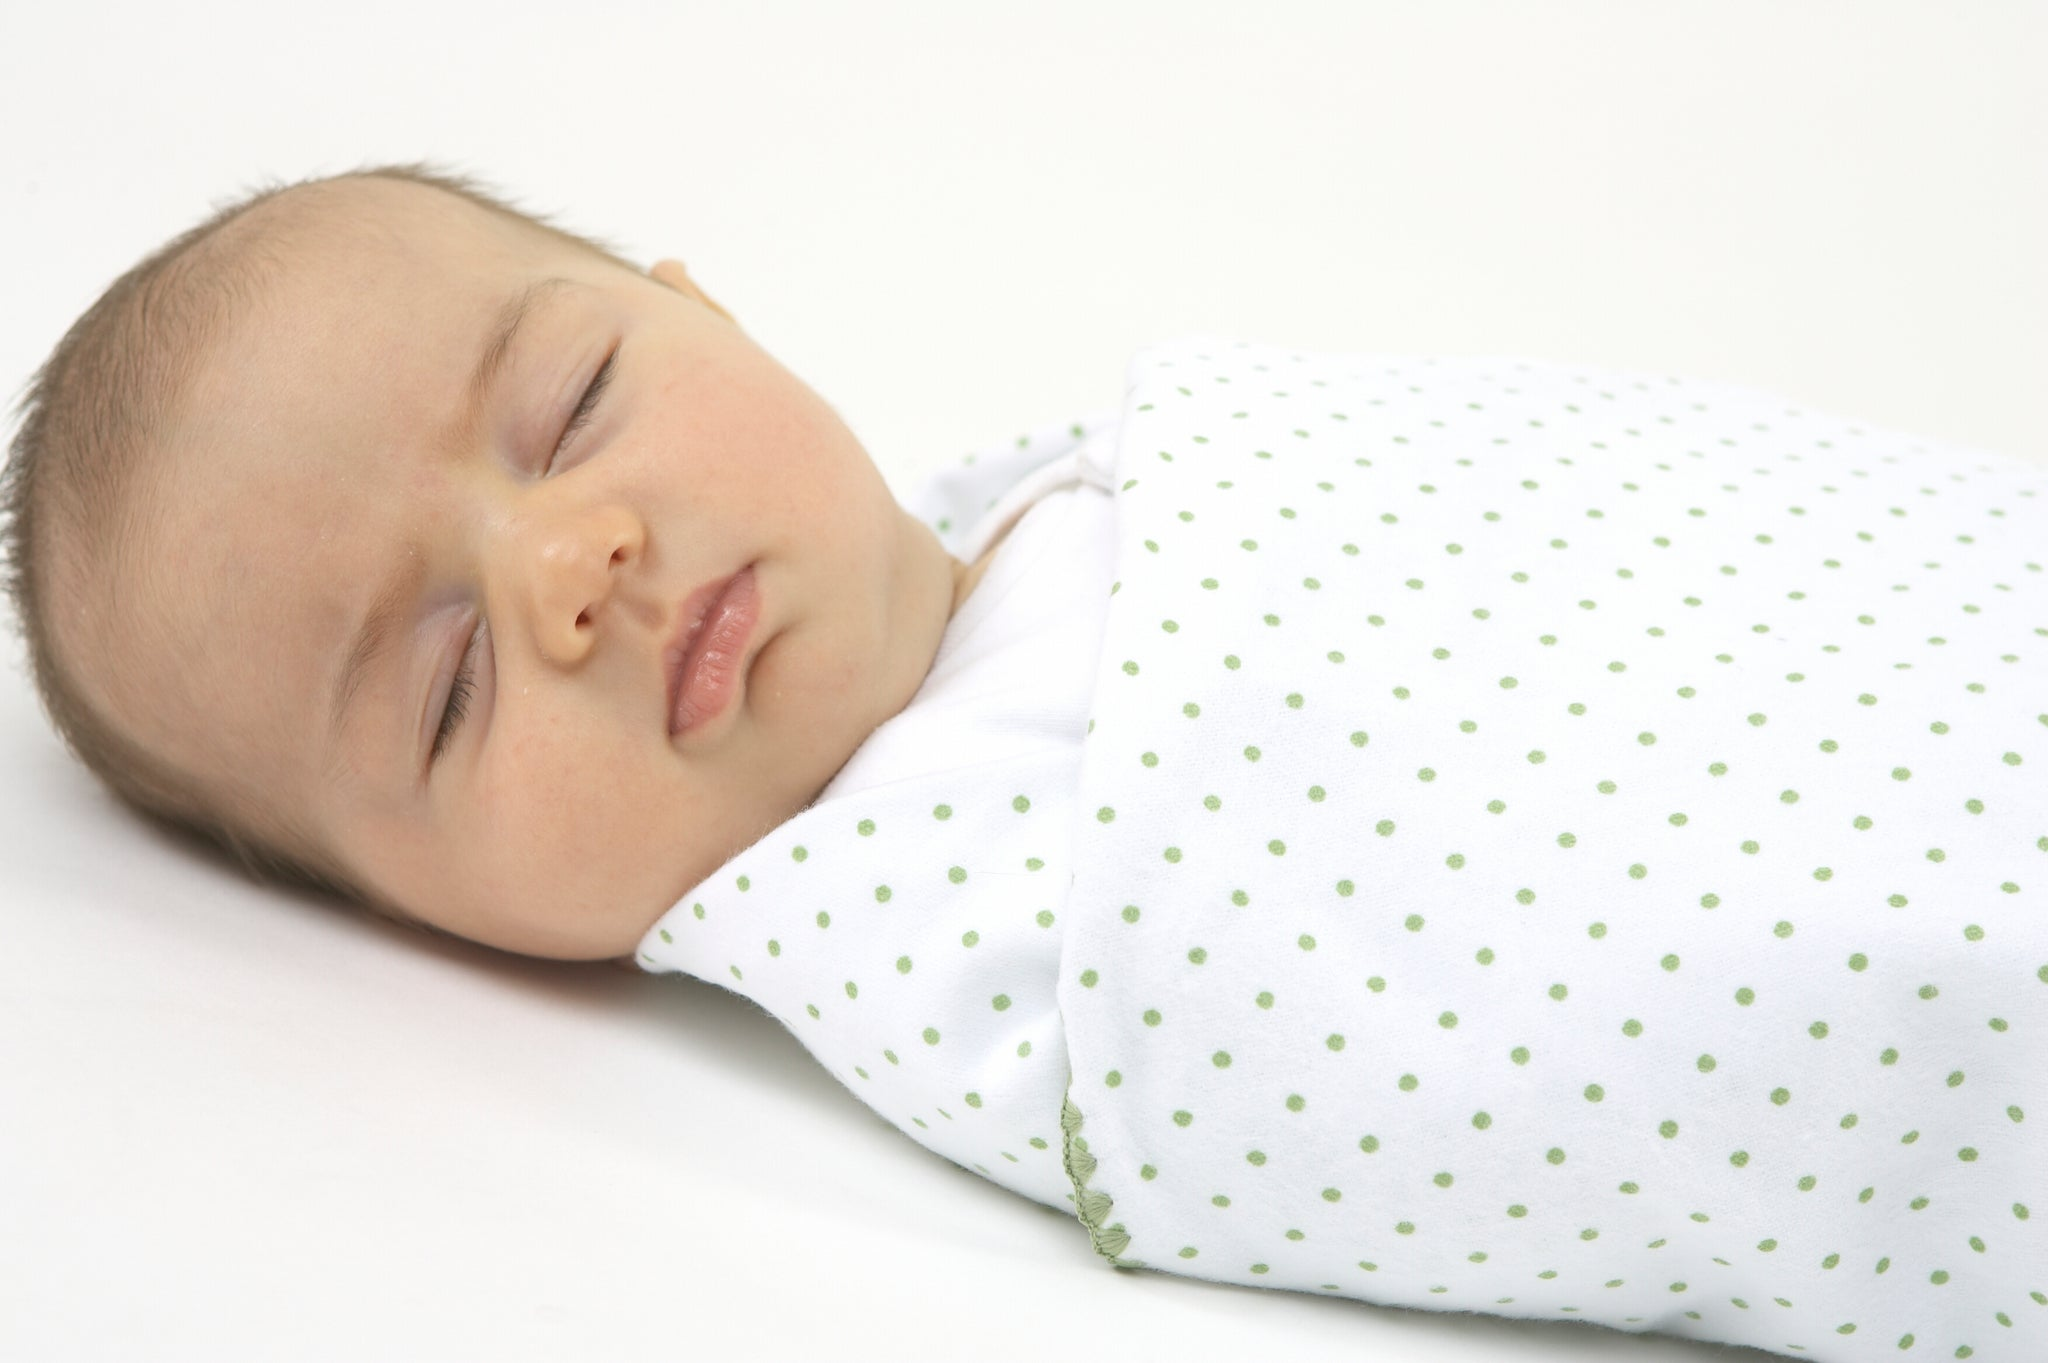 Safe Sleep Baby Images - Swaddle Ultimate Flannel